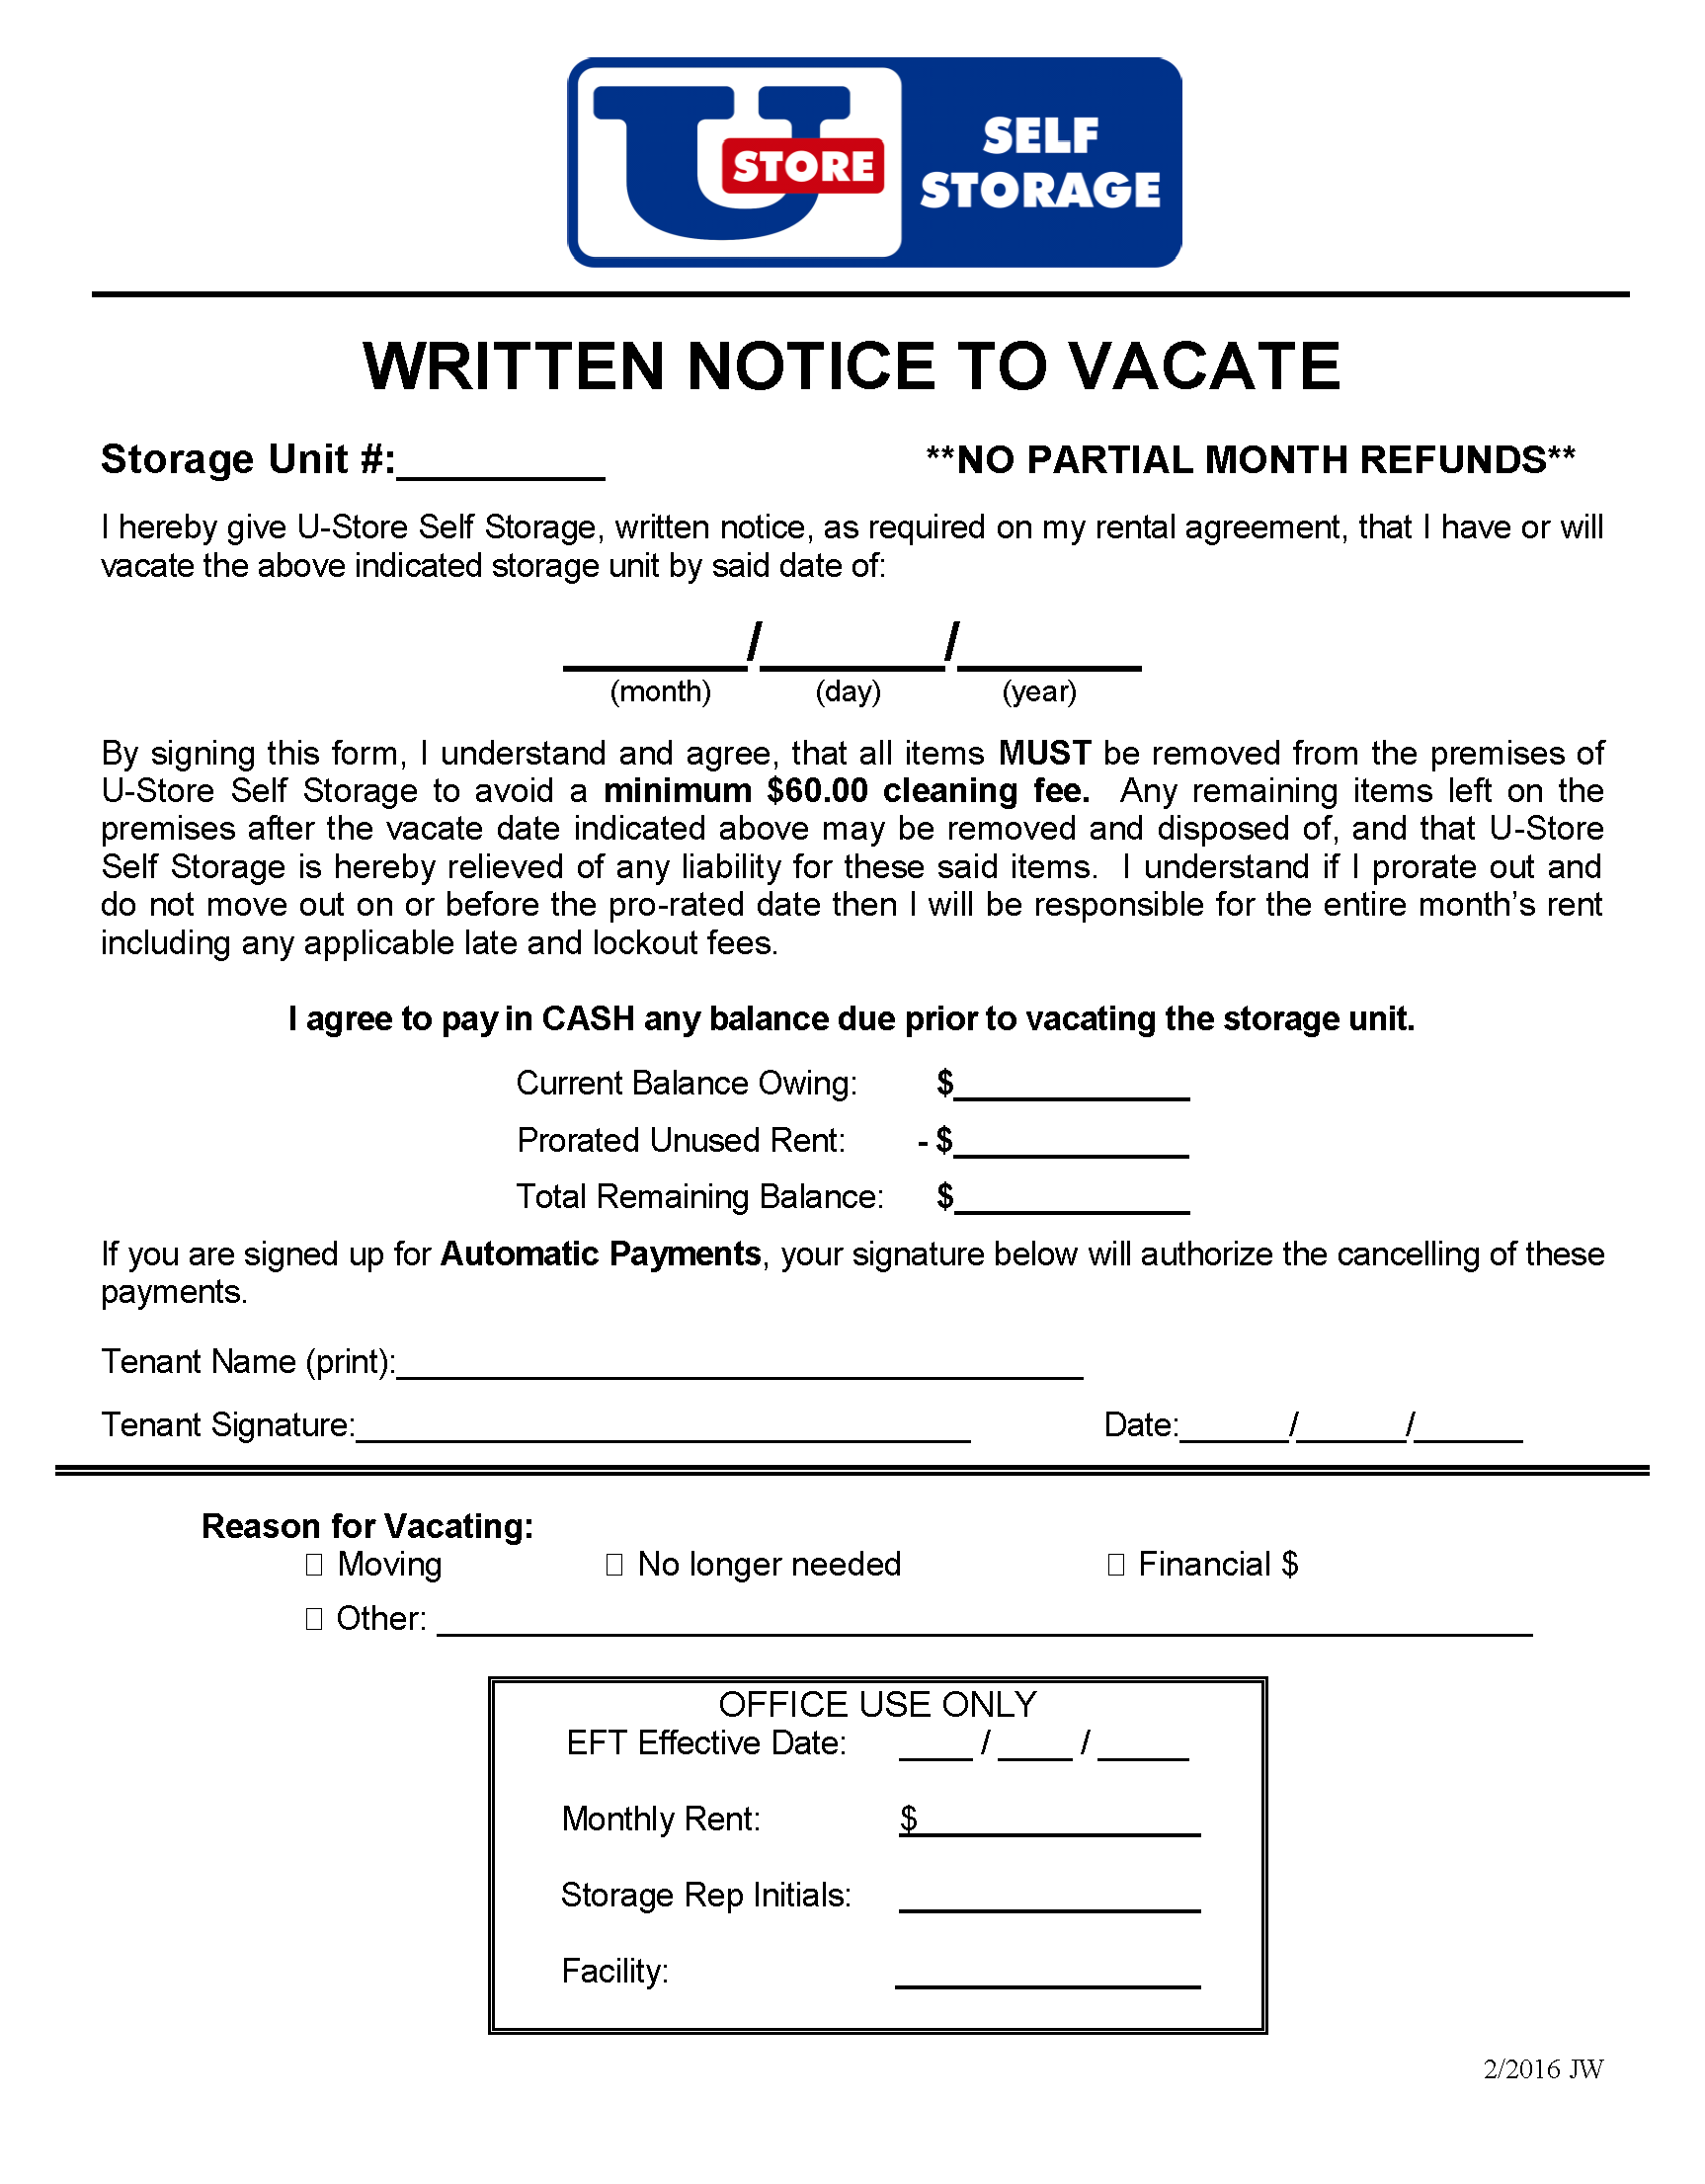 U-Store - Notice to Vacate